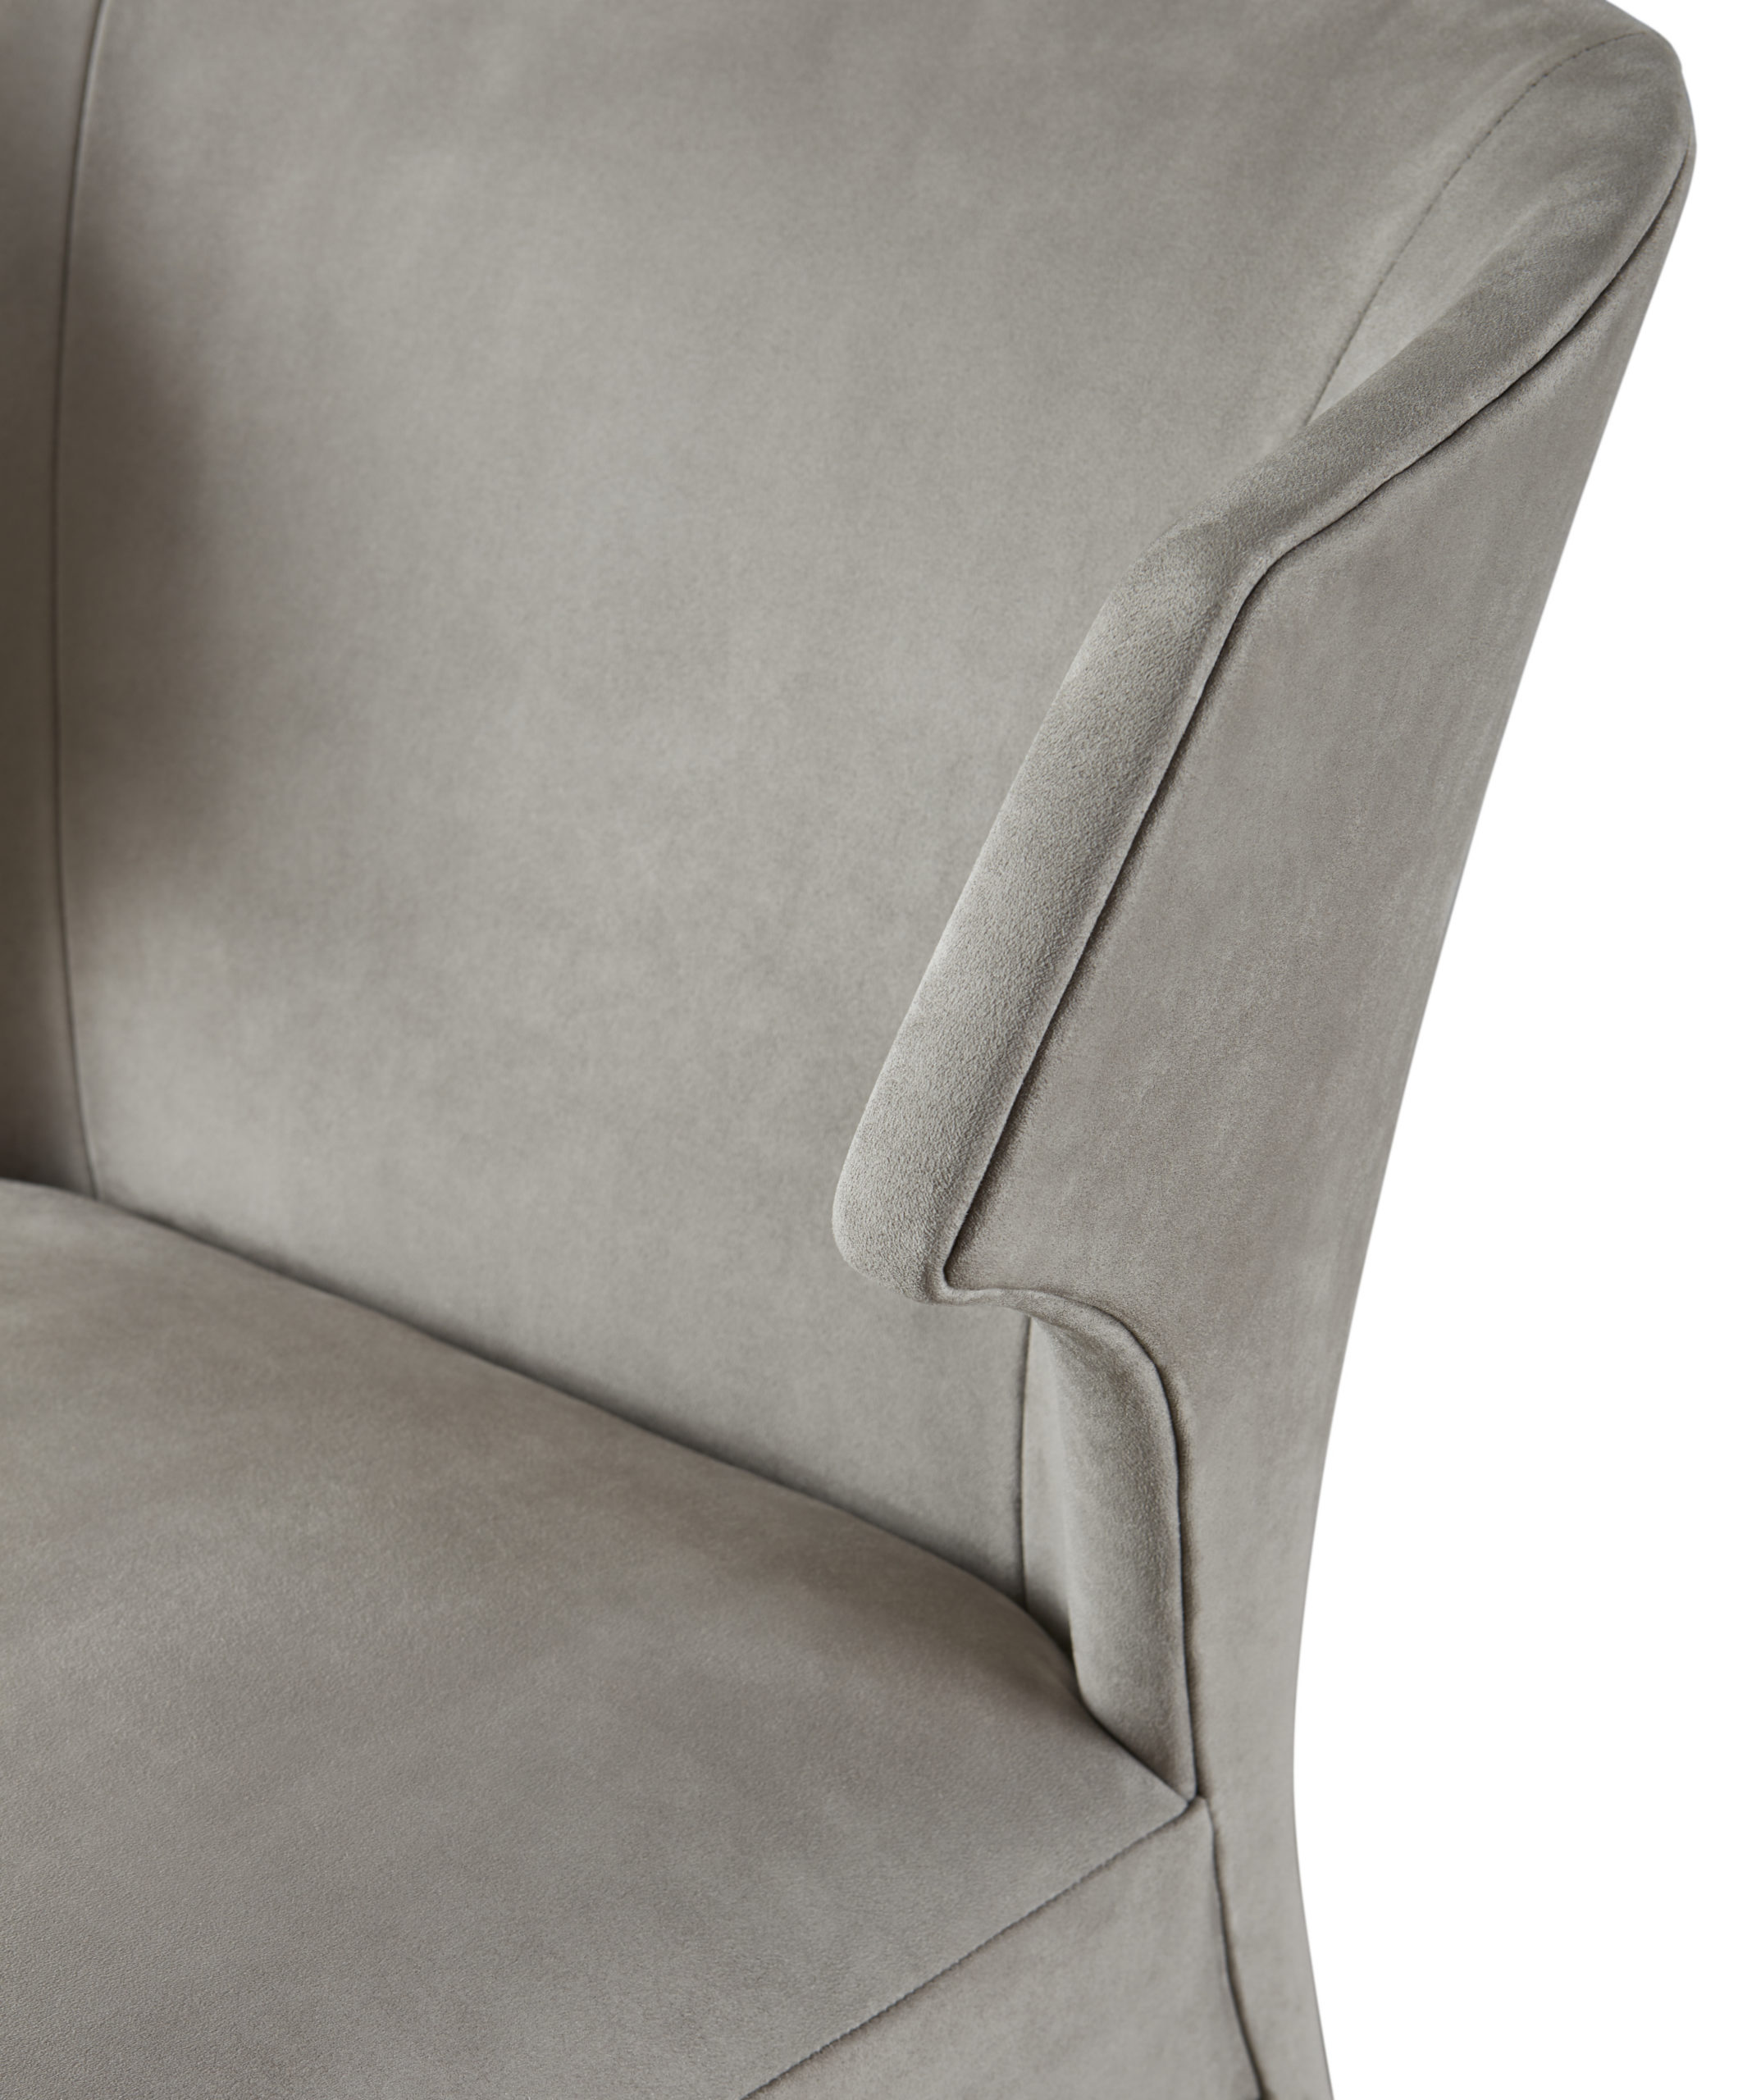 Baker_products_WNWN_lapel_lounge_chair_BAU3101c_DETAIL-scaled-2